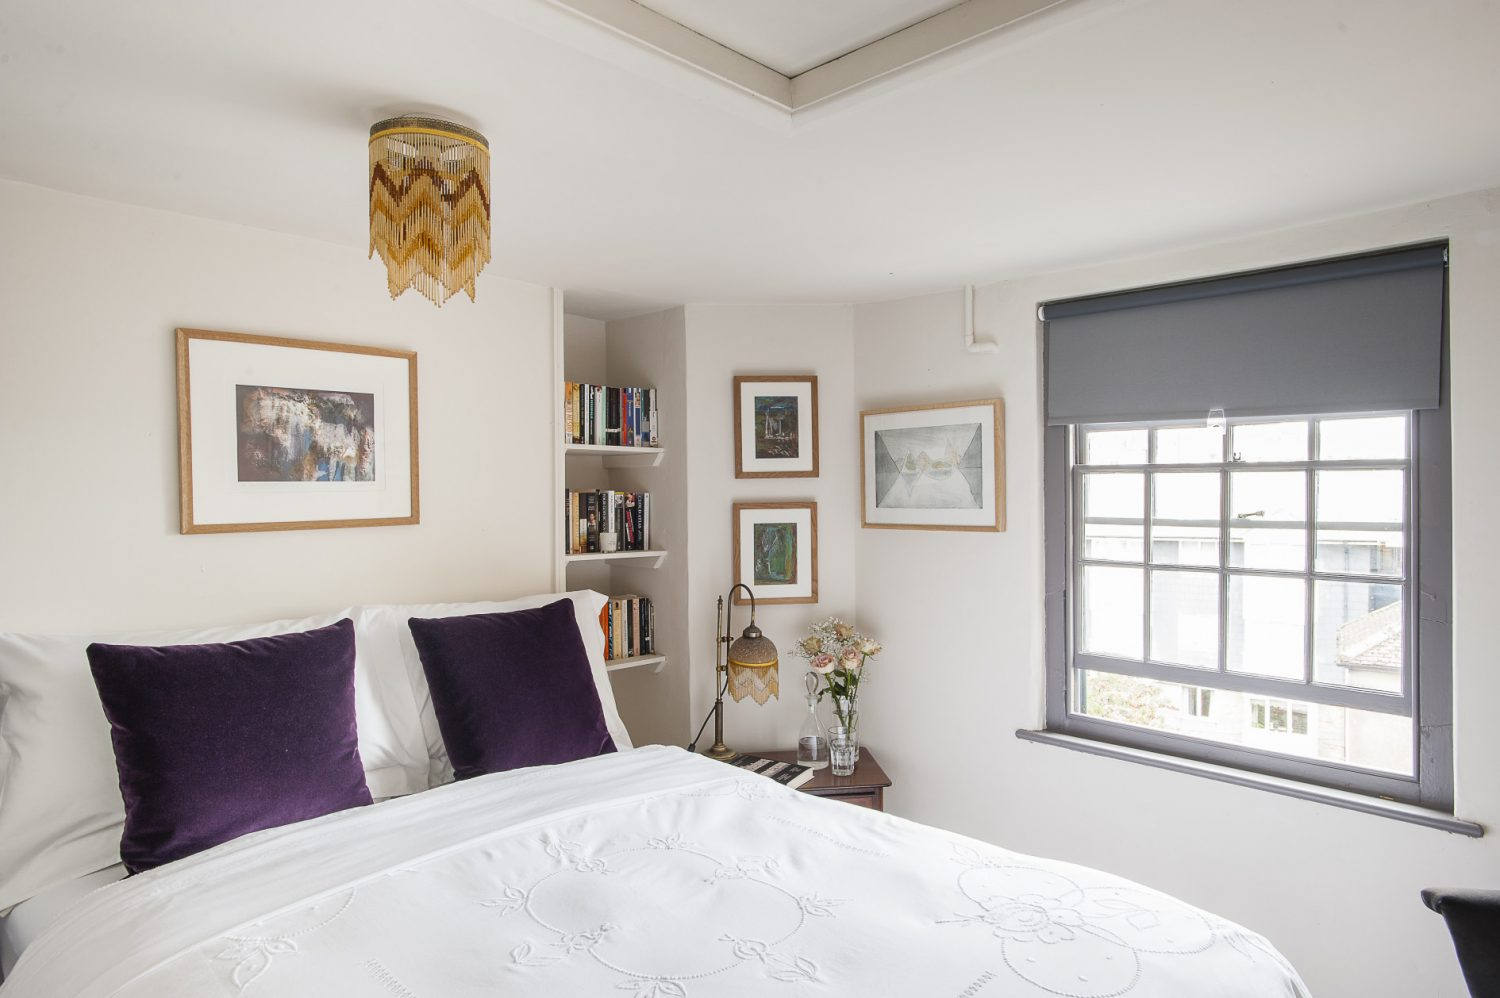 The spare room looks east over Hastings Old Town. The painting next to the window, called Winter Light, is by MG Fraser and depicts the Norwegian Lofoten Islands